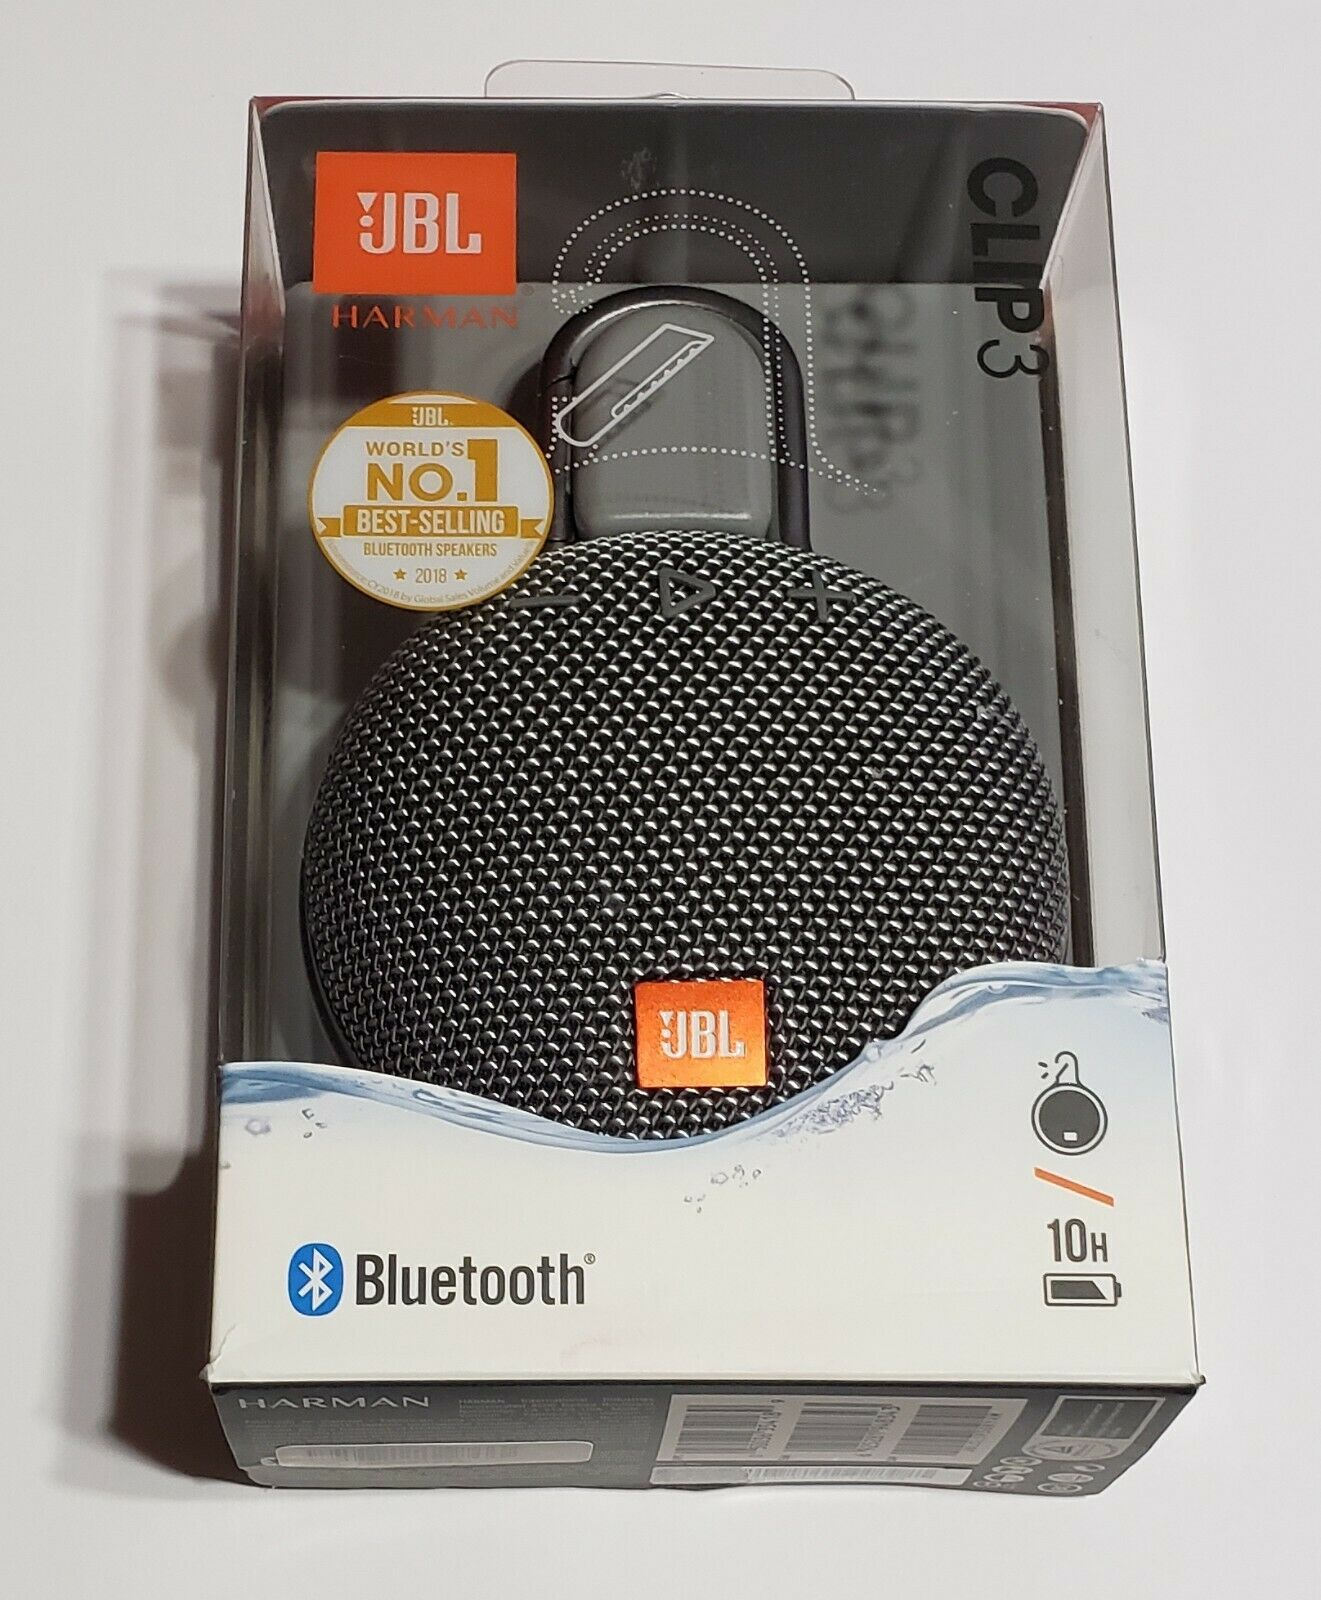 NEW JBL Clip 3 Portable Waterproof Wireless Speaker In Retail Packaging - GRAY - $42.95